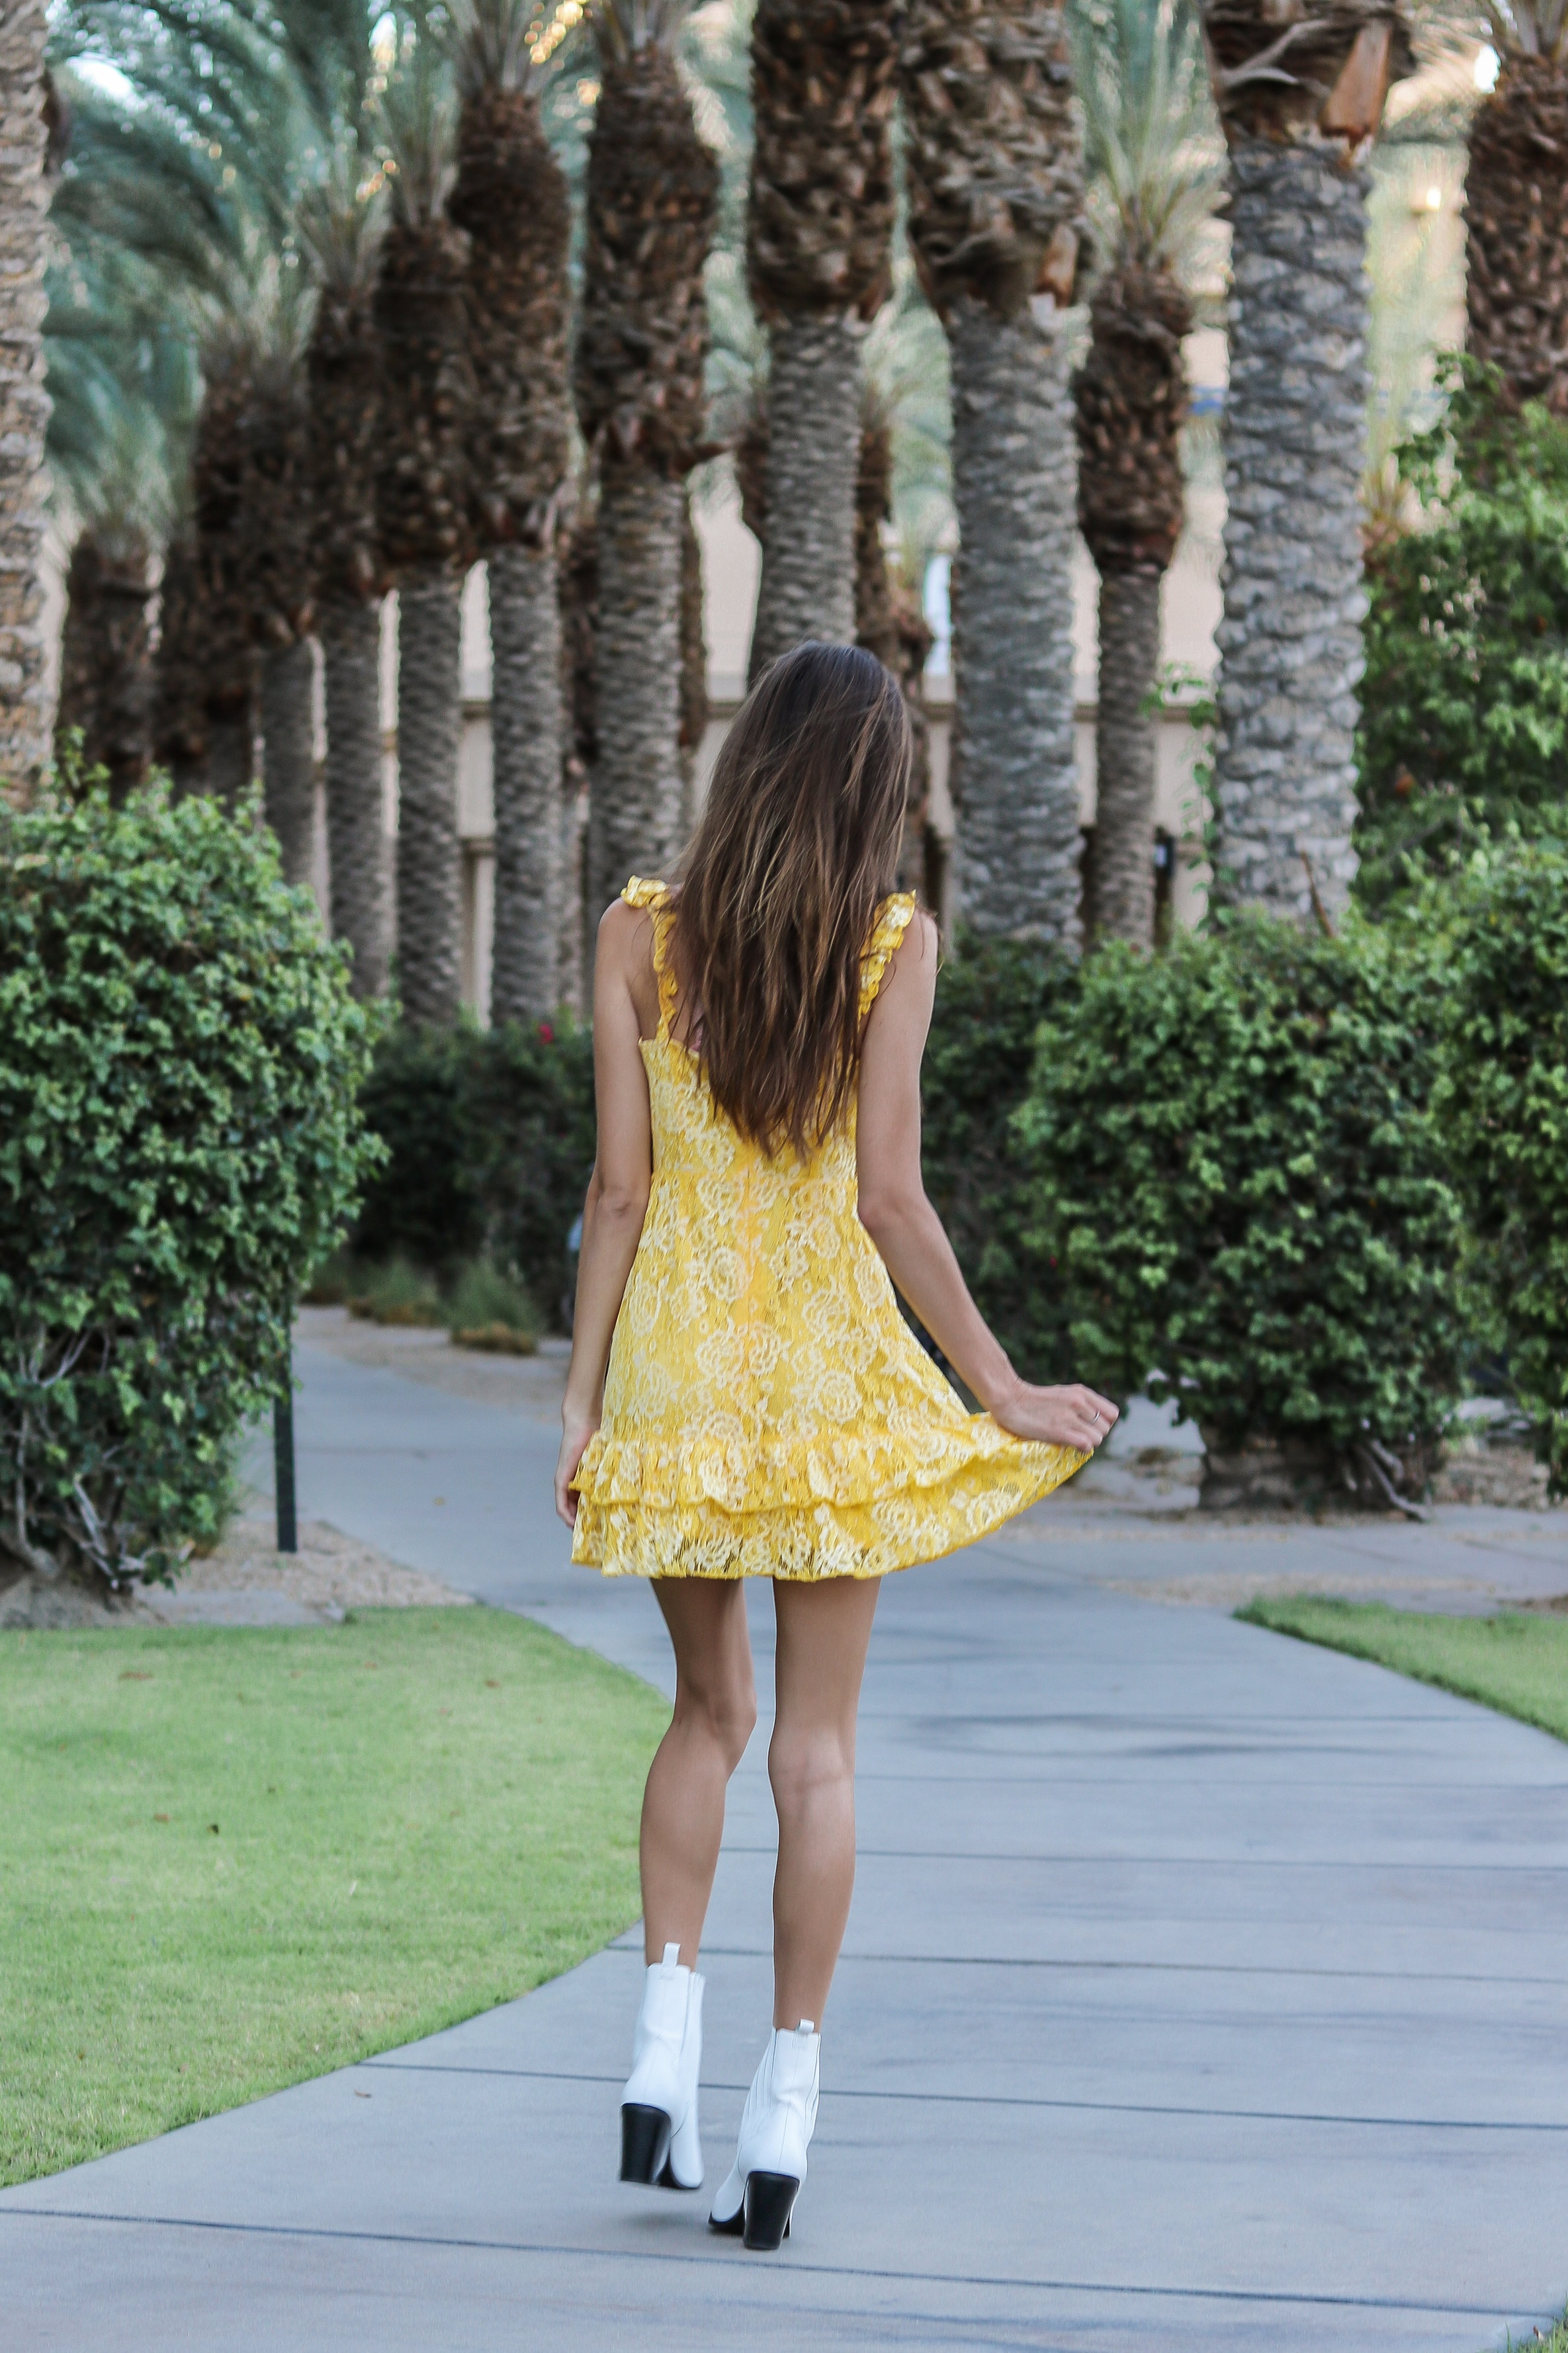 The+Hungarian+Brunette+PALM+SPRINGS+TRAVEL+DIARY%3A+4+OUTFITS+WITH+2+DRESSES%2C+2+TOPS+AND+1+SKIRT